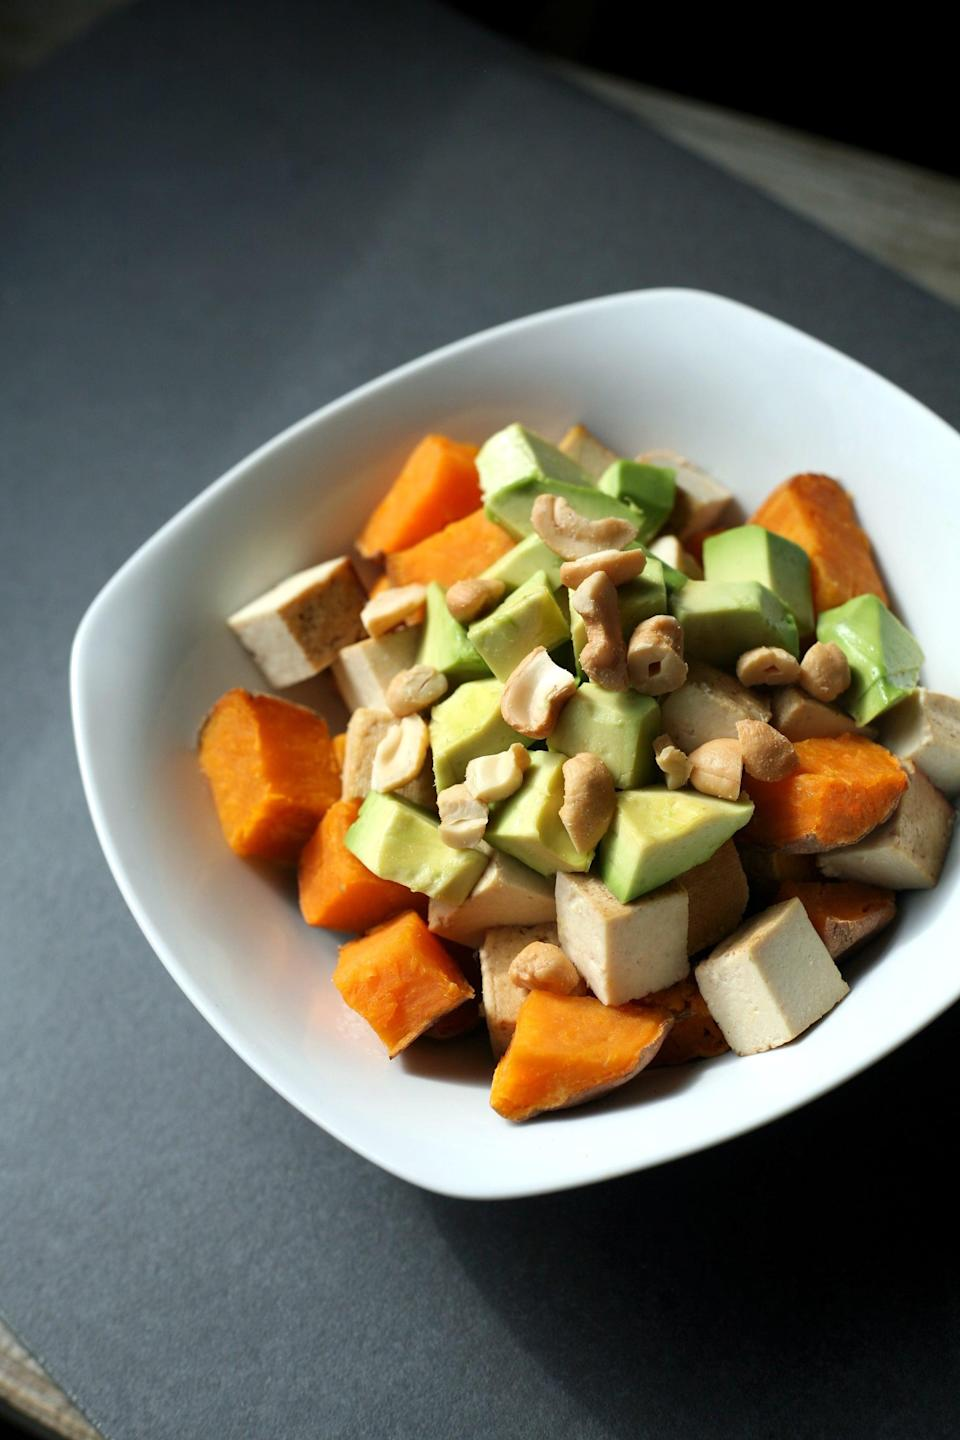 """<p>This bowl tastes perfect on its own, but adding a little crunchy texture with some chopped salted cashews makes it even more delicious.</p> <p><strong>Get the recipe:</strong> <a href=""""https://www.popsugar.com/fitness/Sweet-Potato-Tofu-Avocado-Breakfast-43269919"""" class=""""link rapid-noclick-resp"""" rel=""""nofollow noopener"""" target=""""_blank"""" data-ylk=""""slk:sweet potato, tofu, and avocado bowl"""">sweet potato, tofu, and avocado bowl</a></p>"""